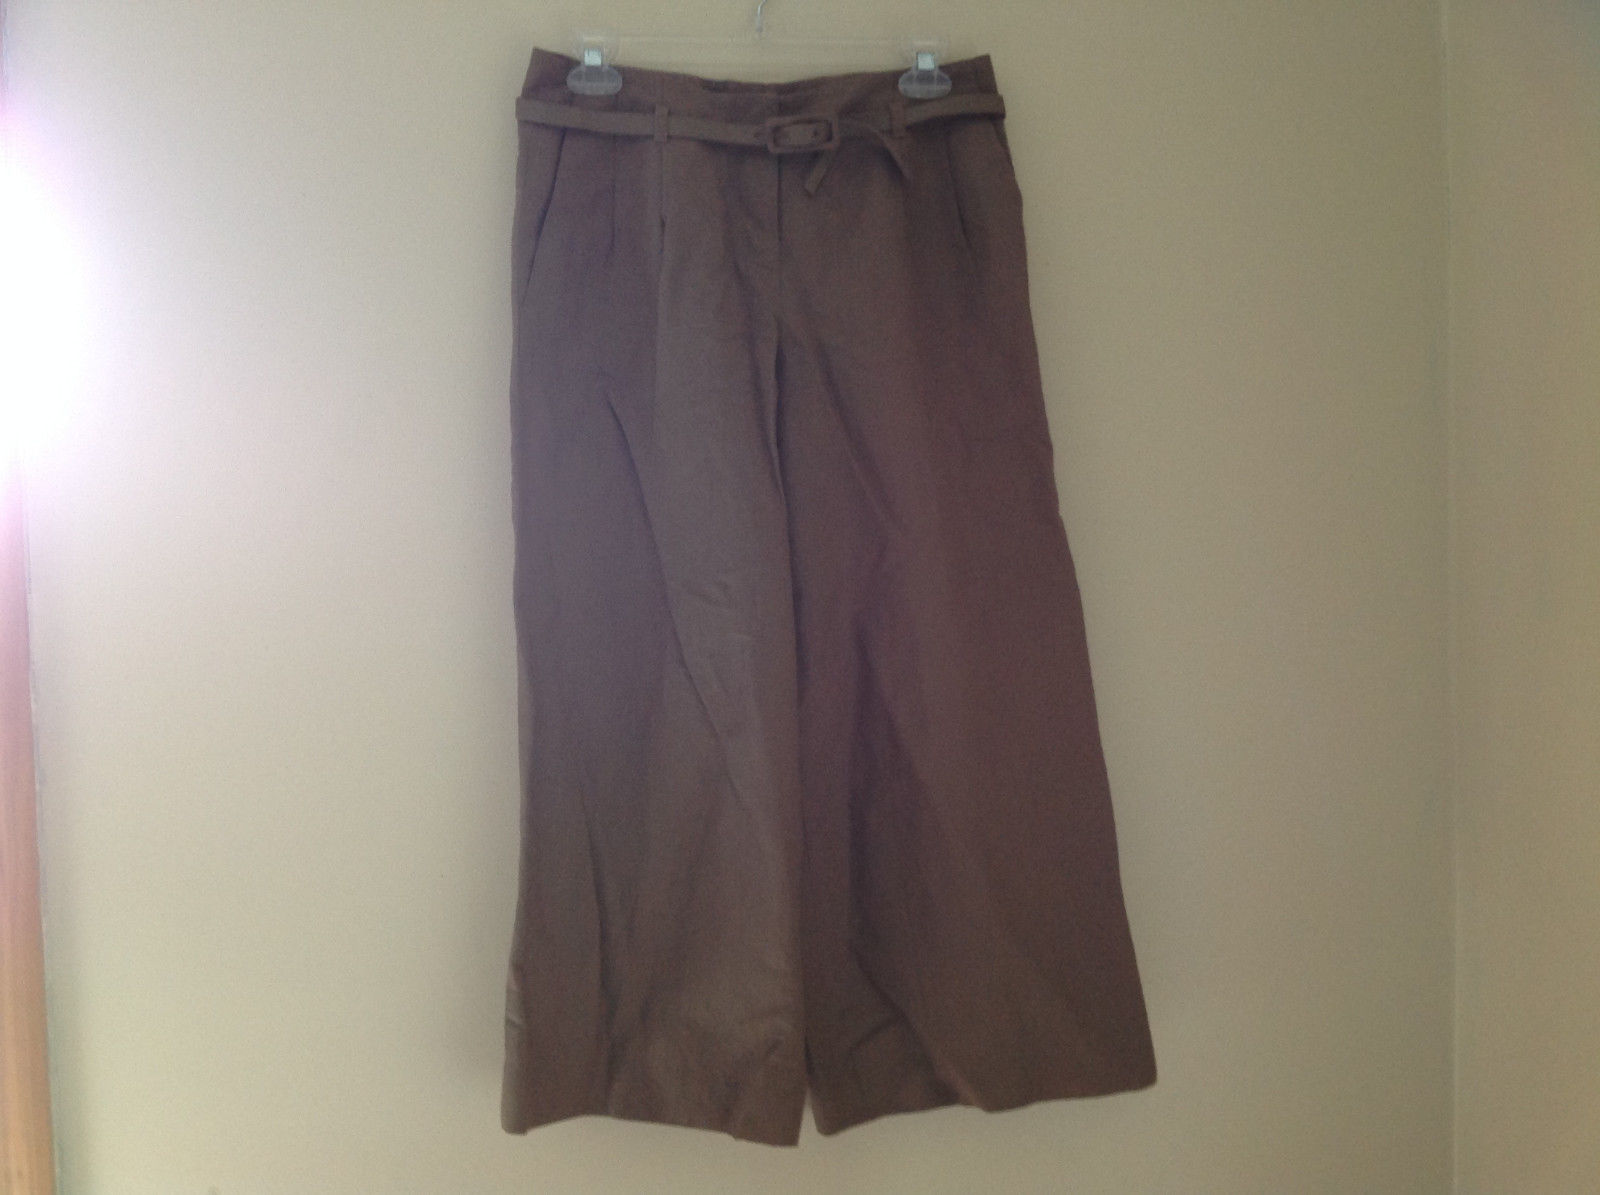 Ann Taylor Loft Brown Pleated Belted 4 Pocket Capris Work Pant Wide Legs Size 2